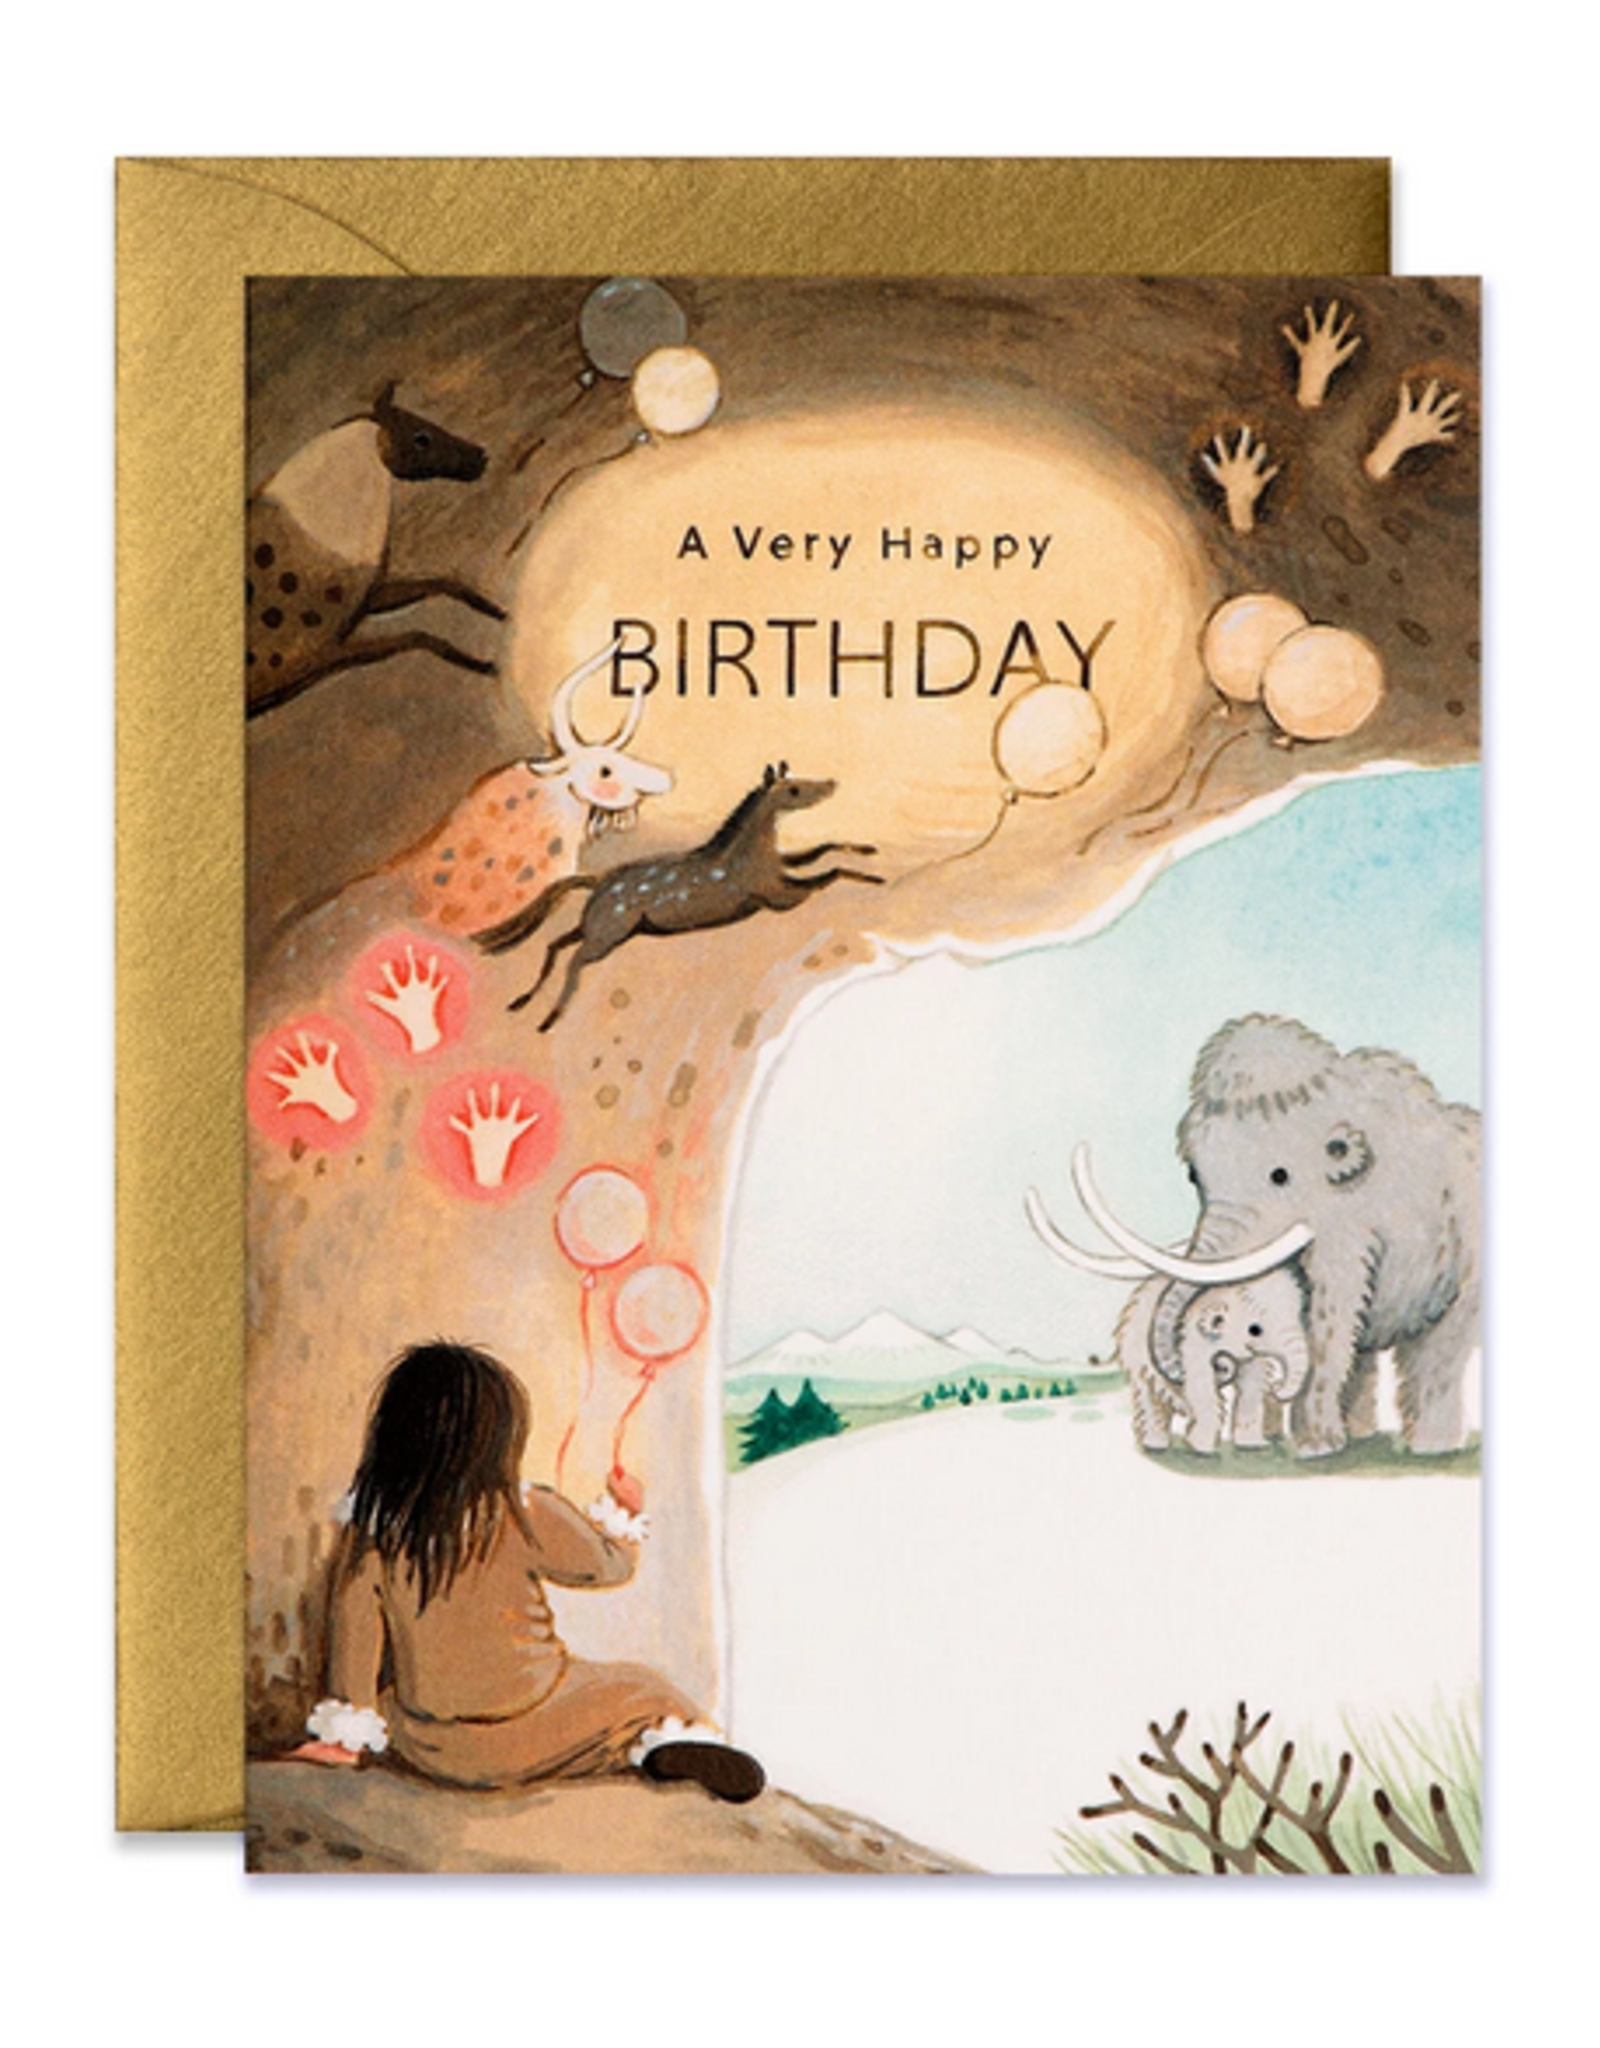 A Very Happy Birthday (Caveman) Greeting Card